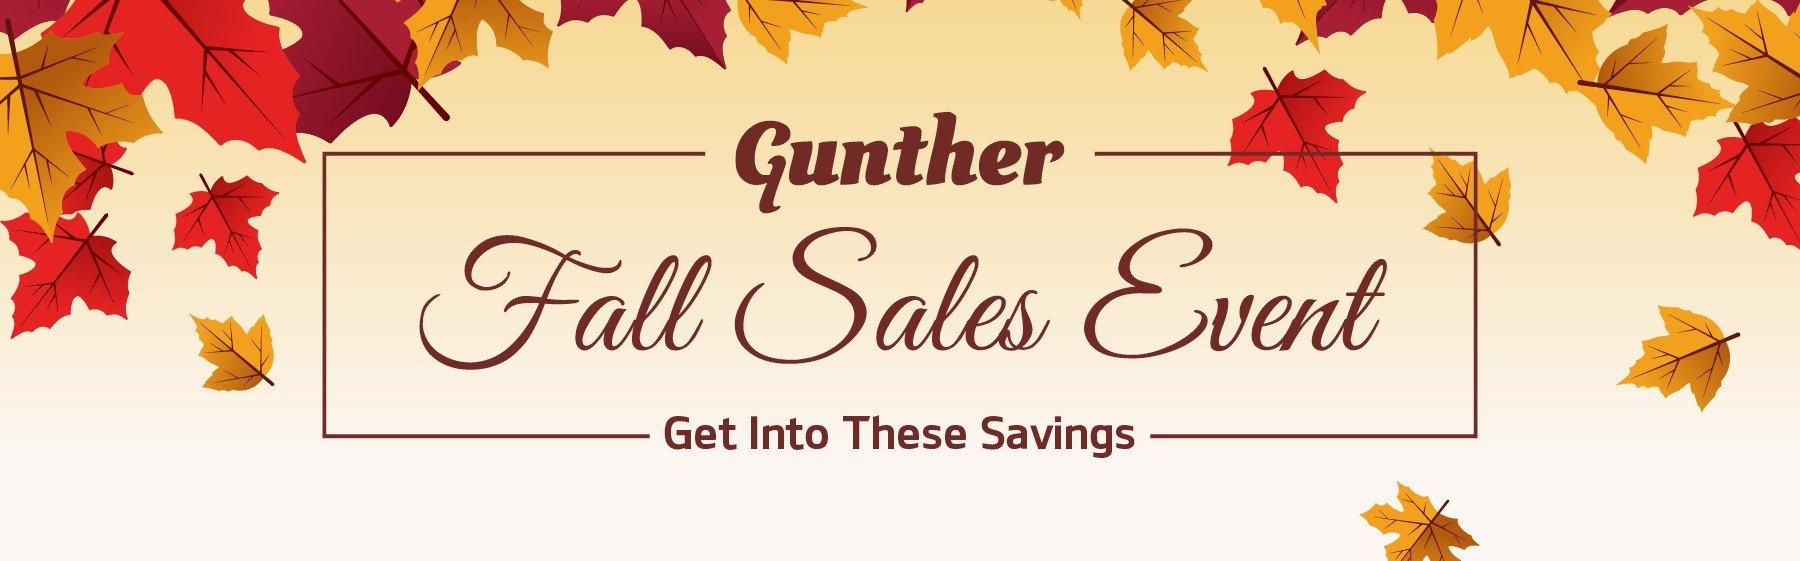 Gunther Fall Sales Event. Get into these savings!